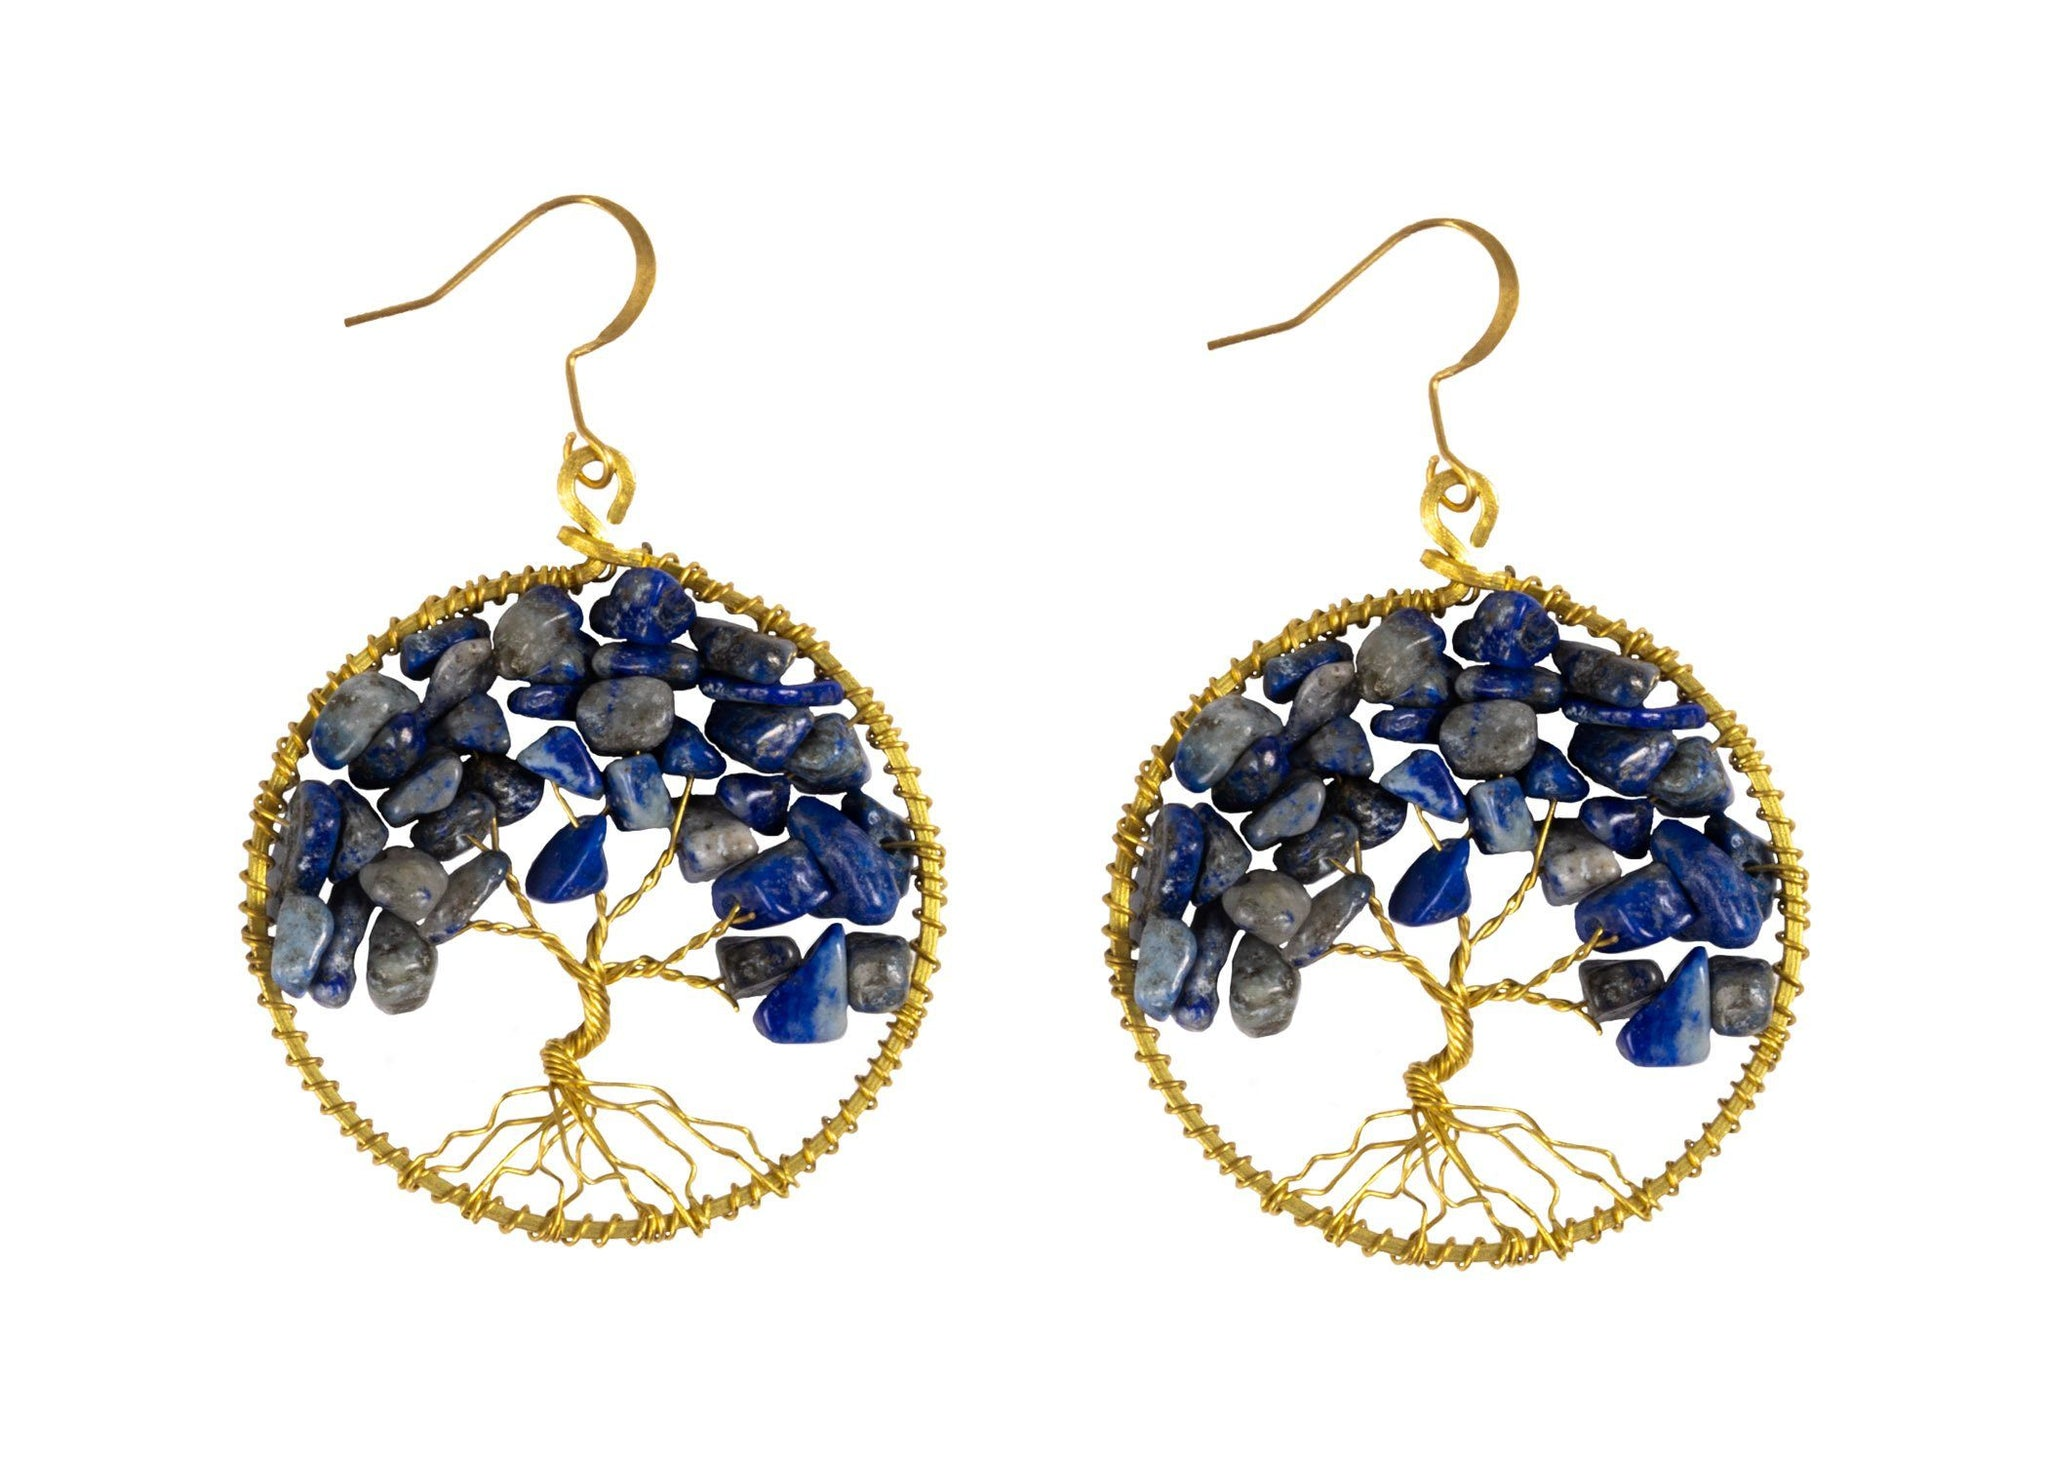 Handmade Earring Tree of Life Brass Circle Shape with Bead, Crystal and Stone - CCCollections